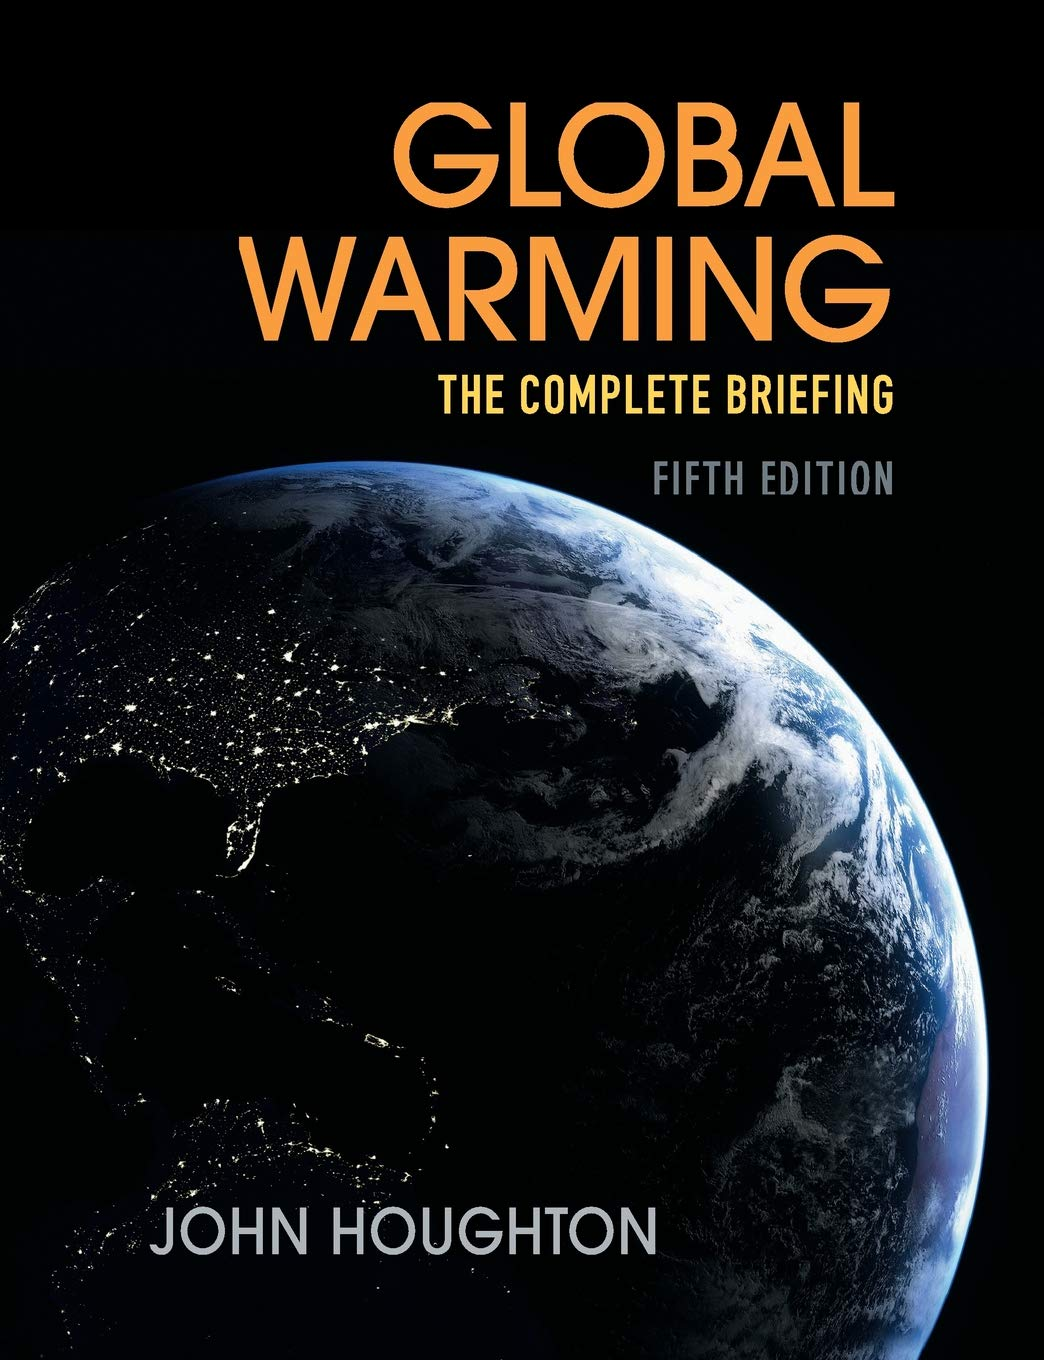 Image OfGlobal Warming: The Complete Briefing